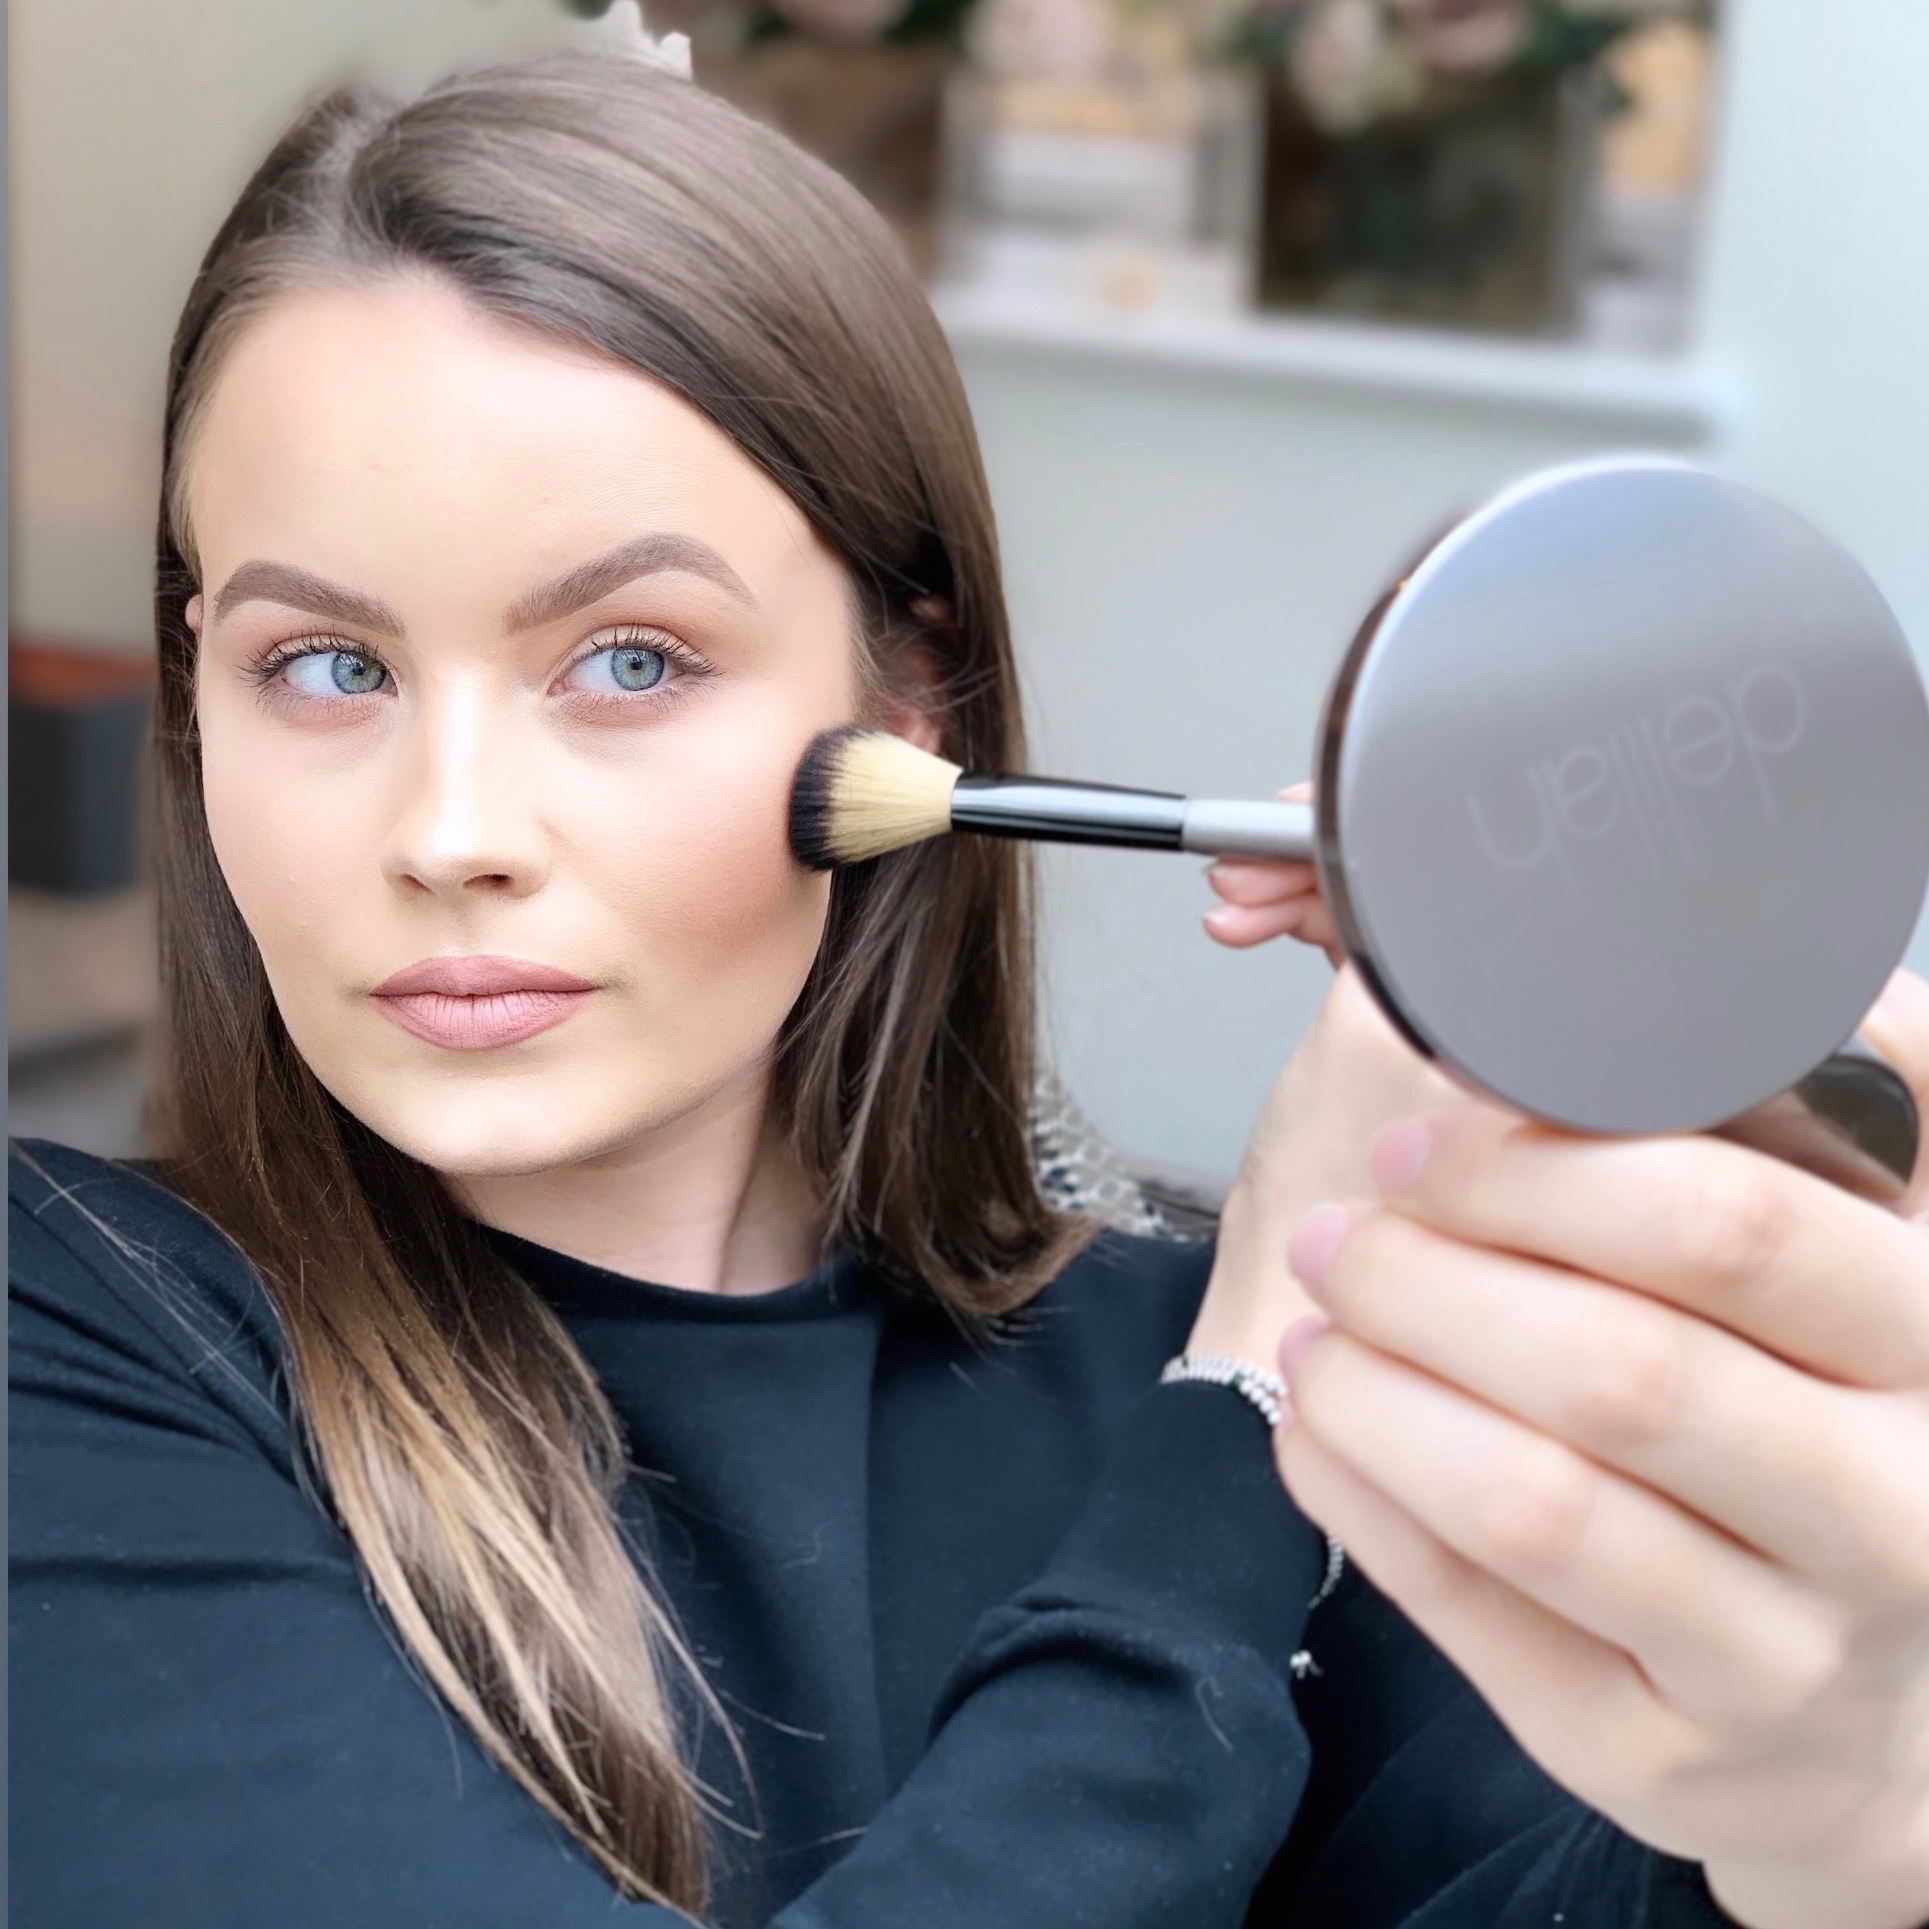 Spring clean your makeup routine - Freshen up your look and give yourself a confidence boost. Now's the time to change those winter shades for a bright summer lipstick or new blusher palate.Book in with our resident makeup artist, Hanna for a post treatment makeover or a 1-2-1 makeup session. Hanna will guide you through hottest looks right now and provide advice on which look would work best to enhance your look.